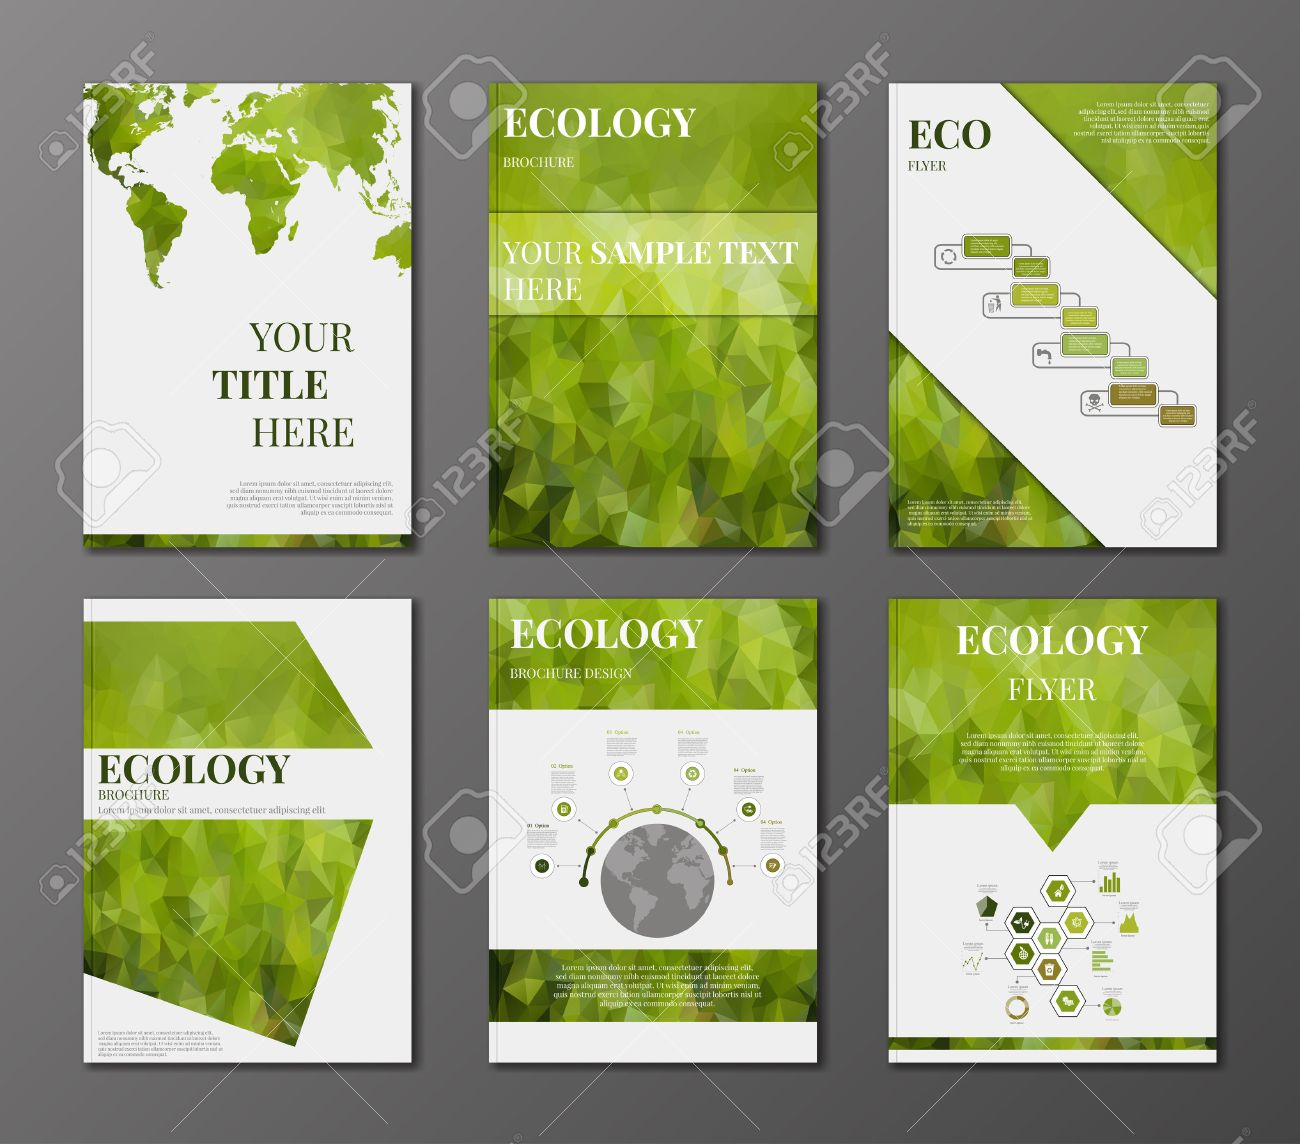 Vector Set Of Brochure Or Flyer Design Template  Applications     Vector   Vector set of brochure or flyer design template  Applications and  Online Services Infographic Concept  Infographic elements concerning to  ecology